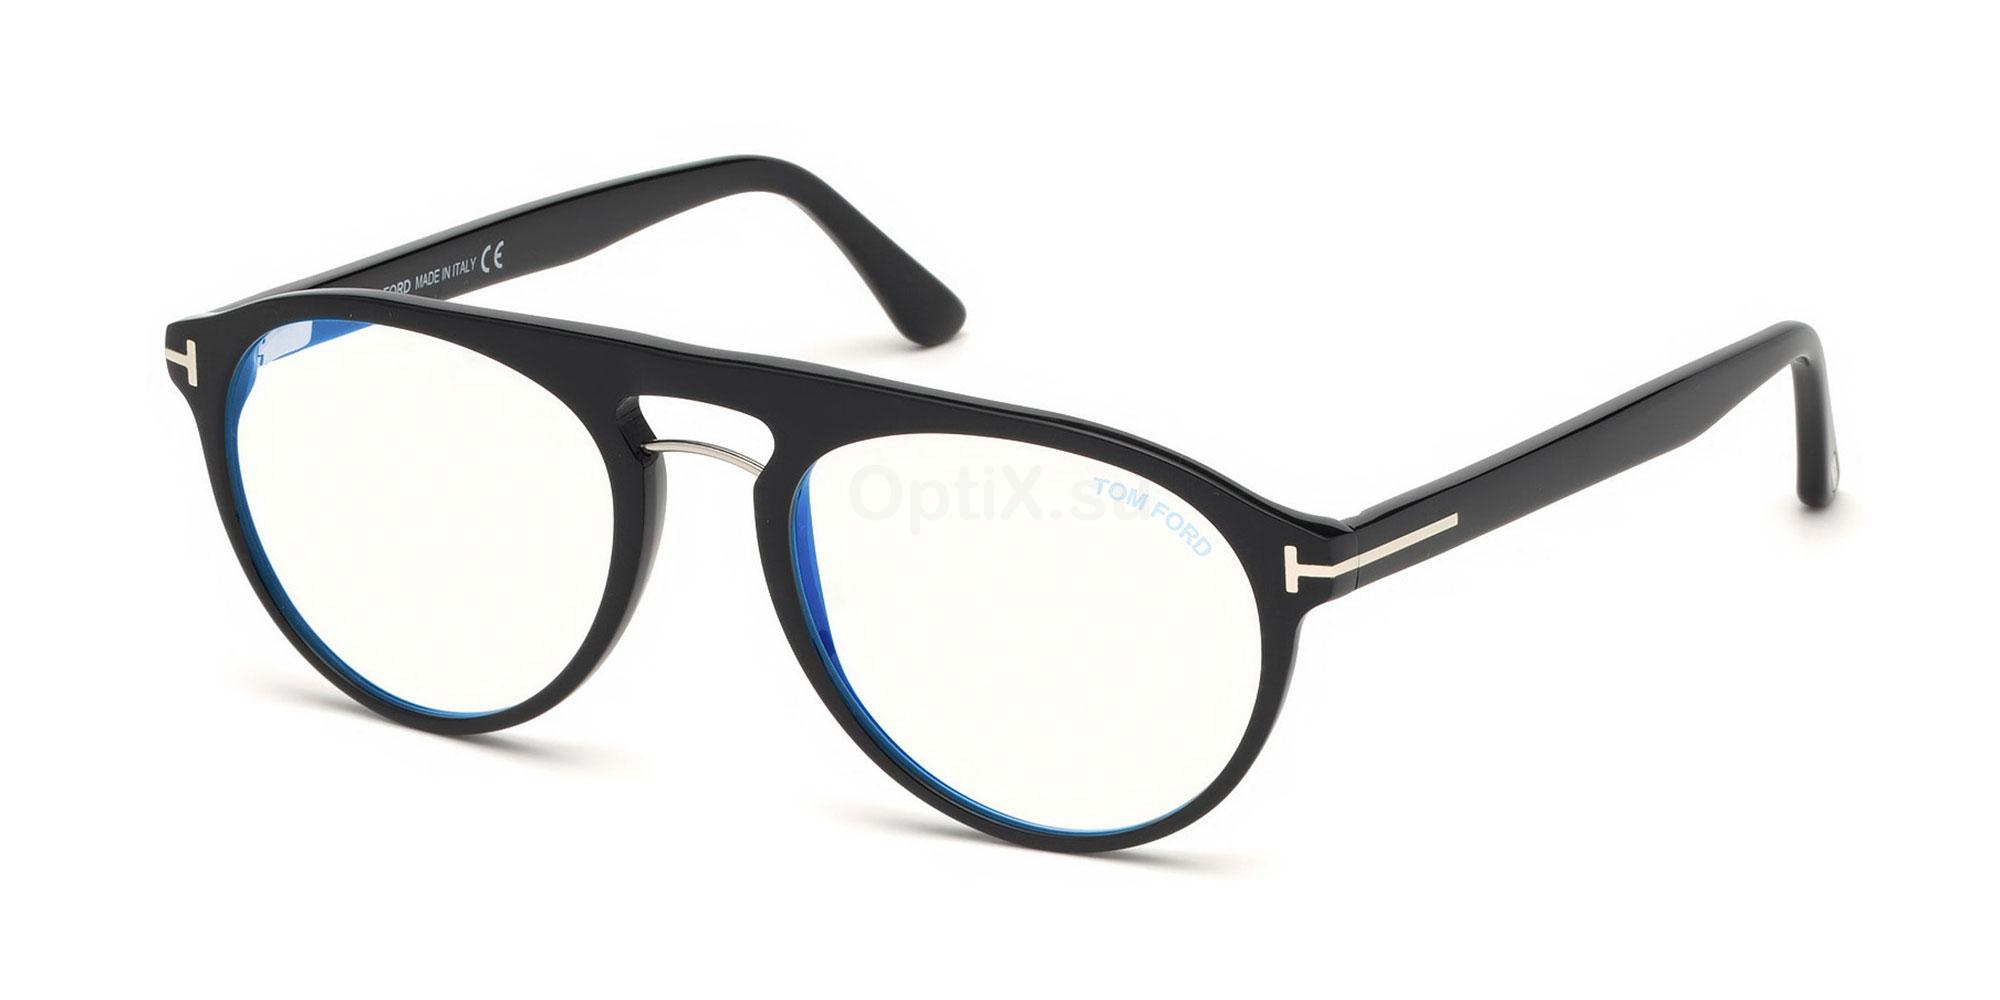 001 FT5587-B Glasses, Tom Ford